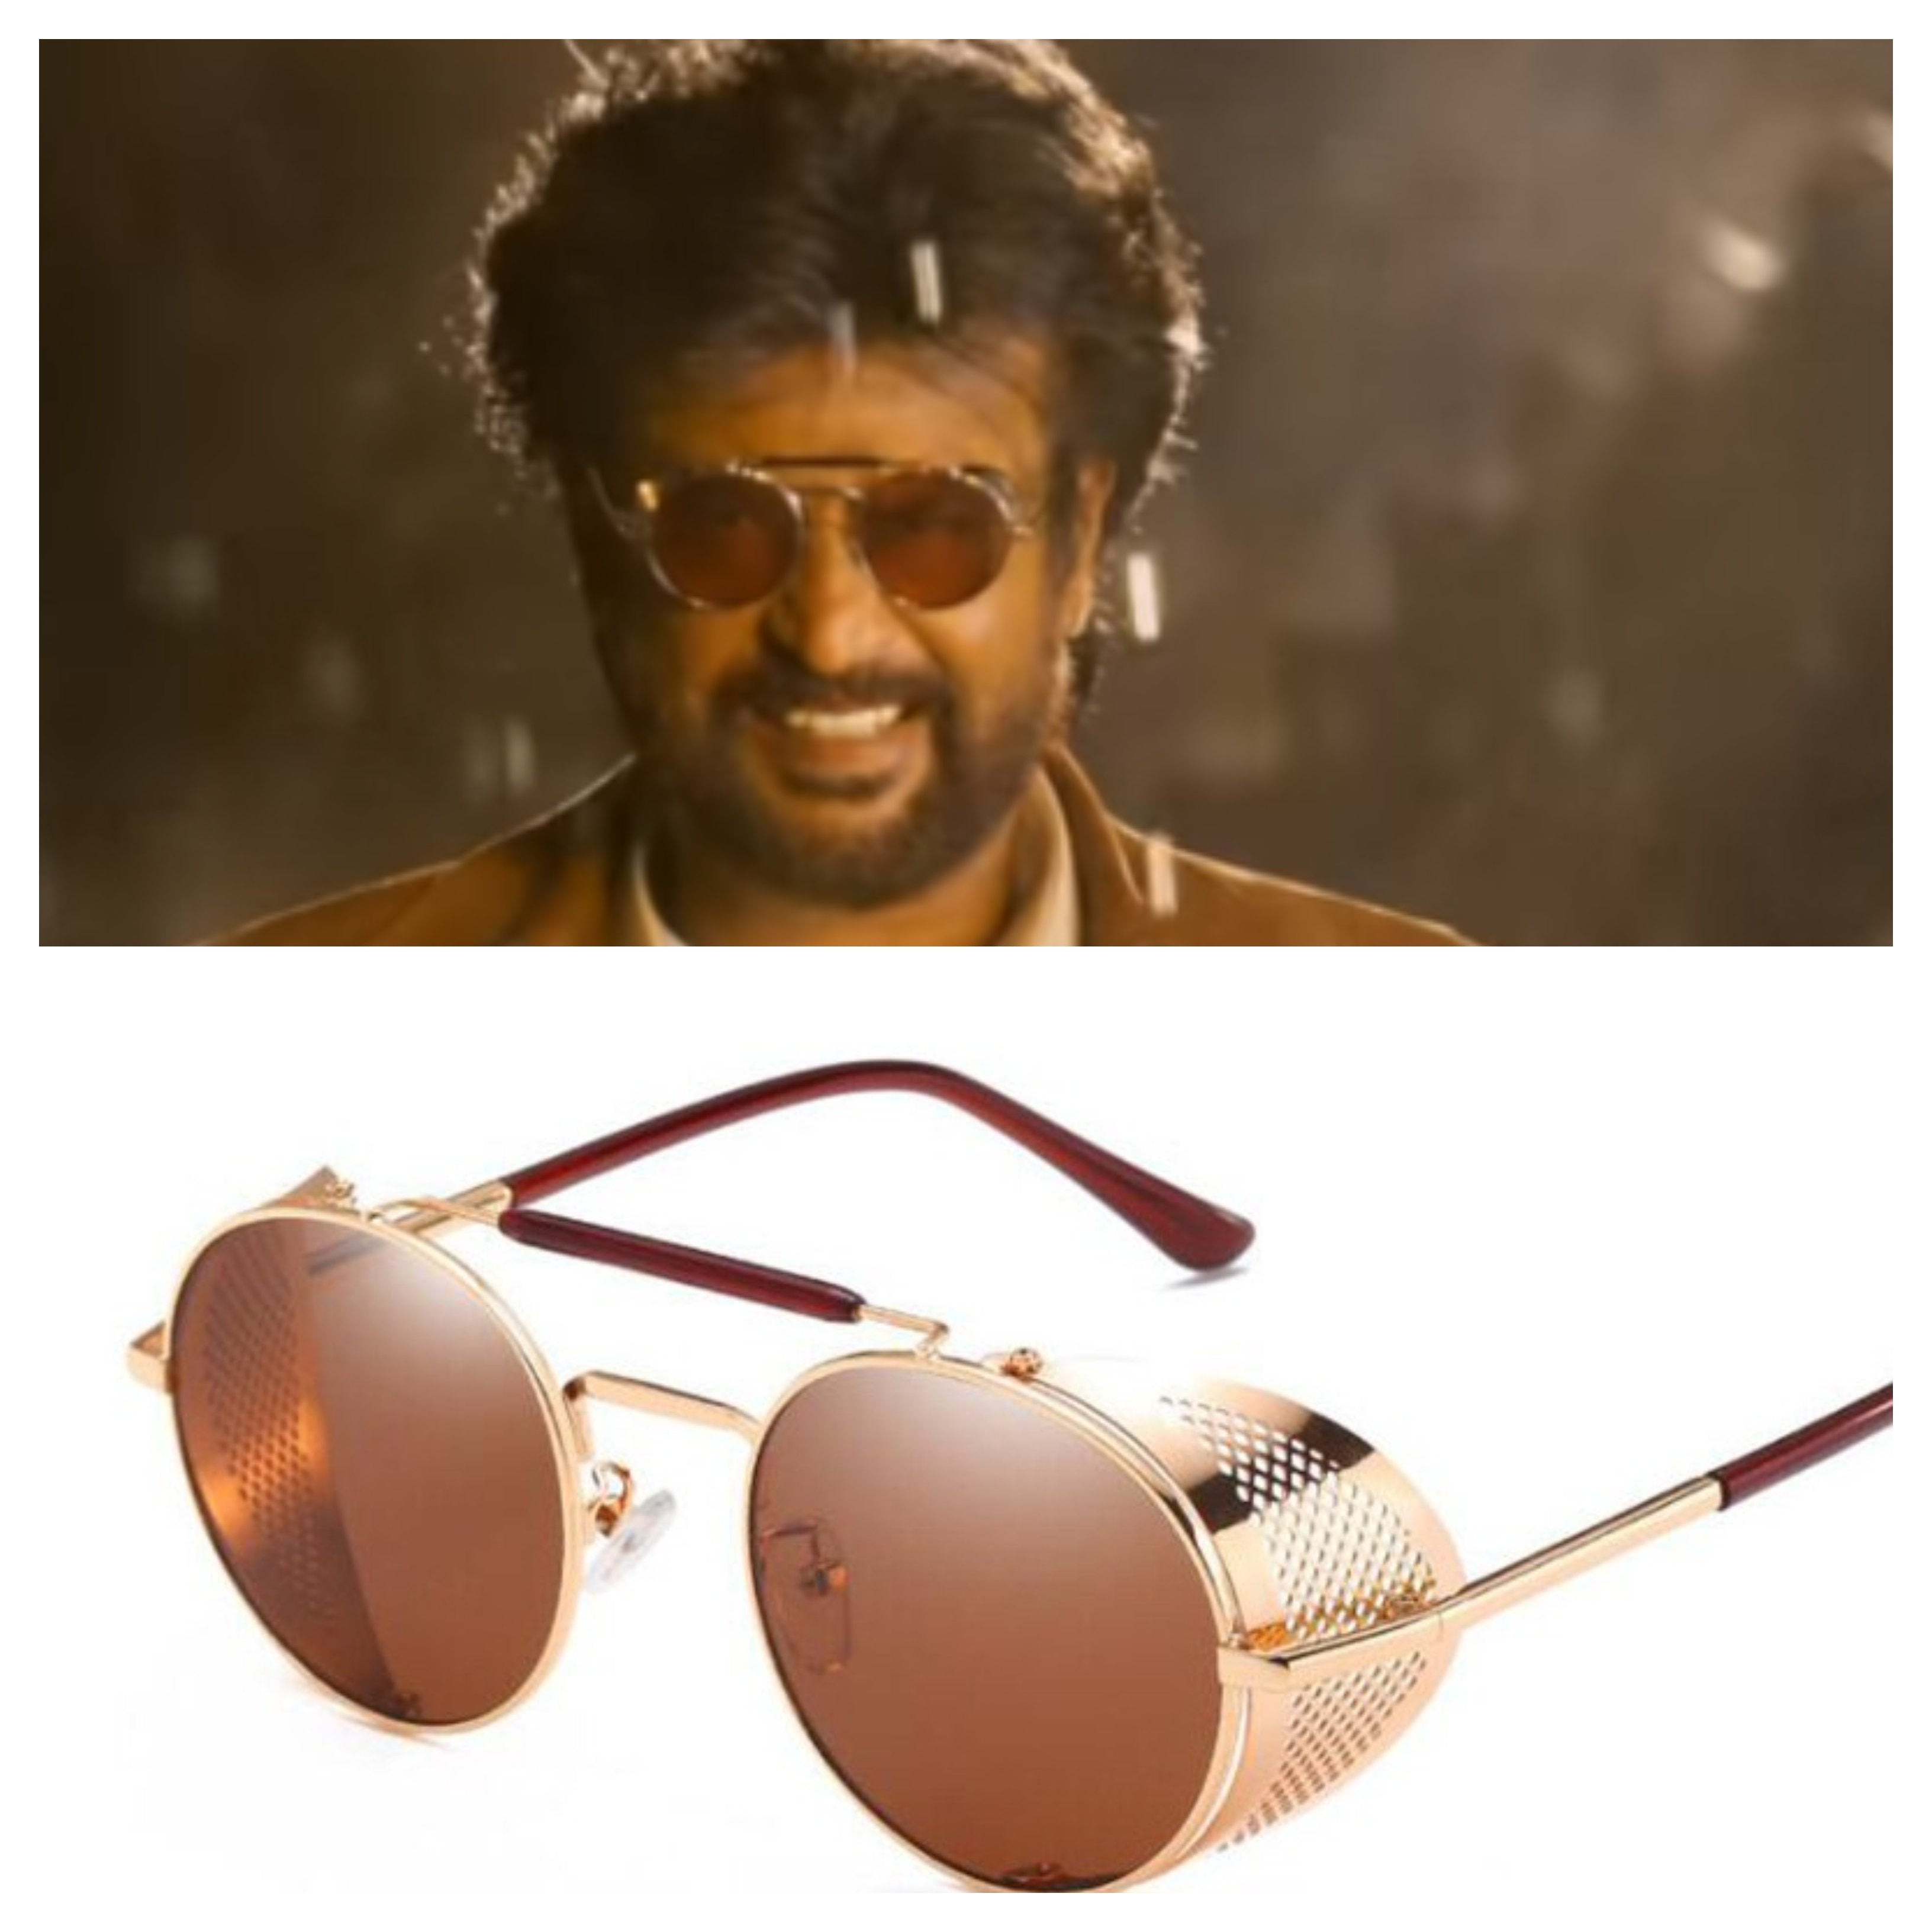 Rajnikanth Darbar Movie Sunglasses  For Men and Women-JackMarc